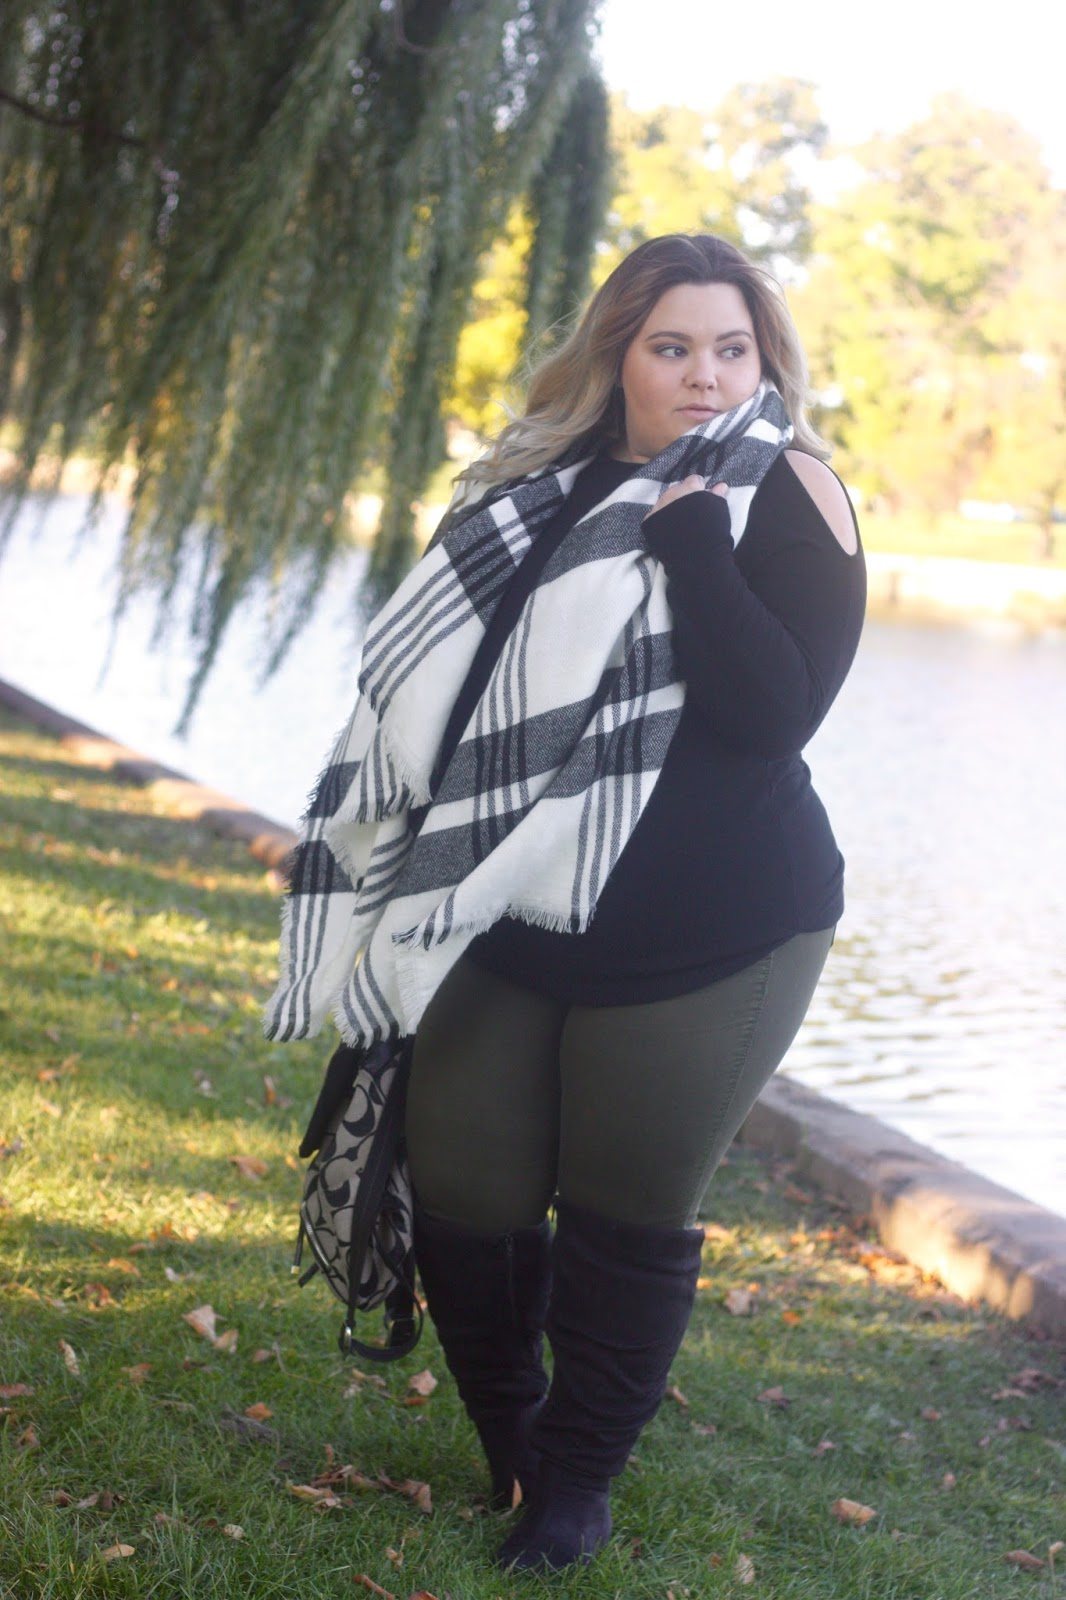 blanket scarf, meijer, meijer style, cargo skinny jeans, plus size style, plus size fashion, cold shoulder trend, sweater cut-out, natalie craig, natalie in the city, wide calf knee high boots, fashion blogger, chicago blogger, midwest blogger, plus size blogger, fall fashion 2016